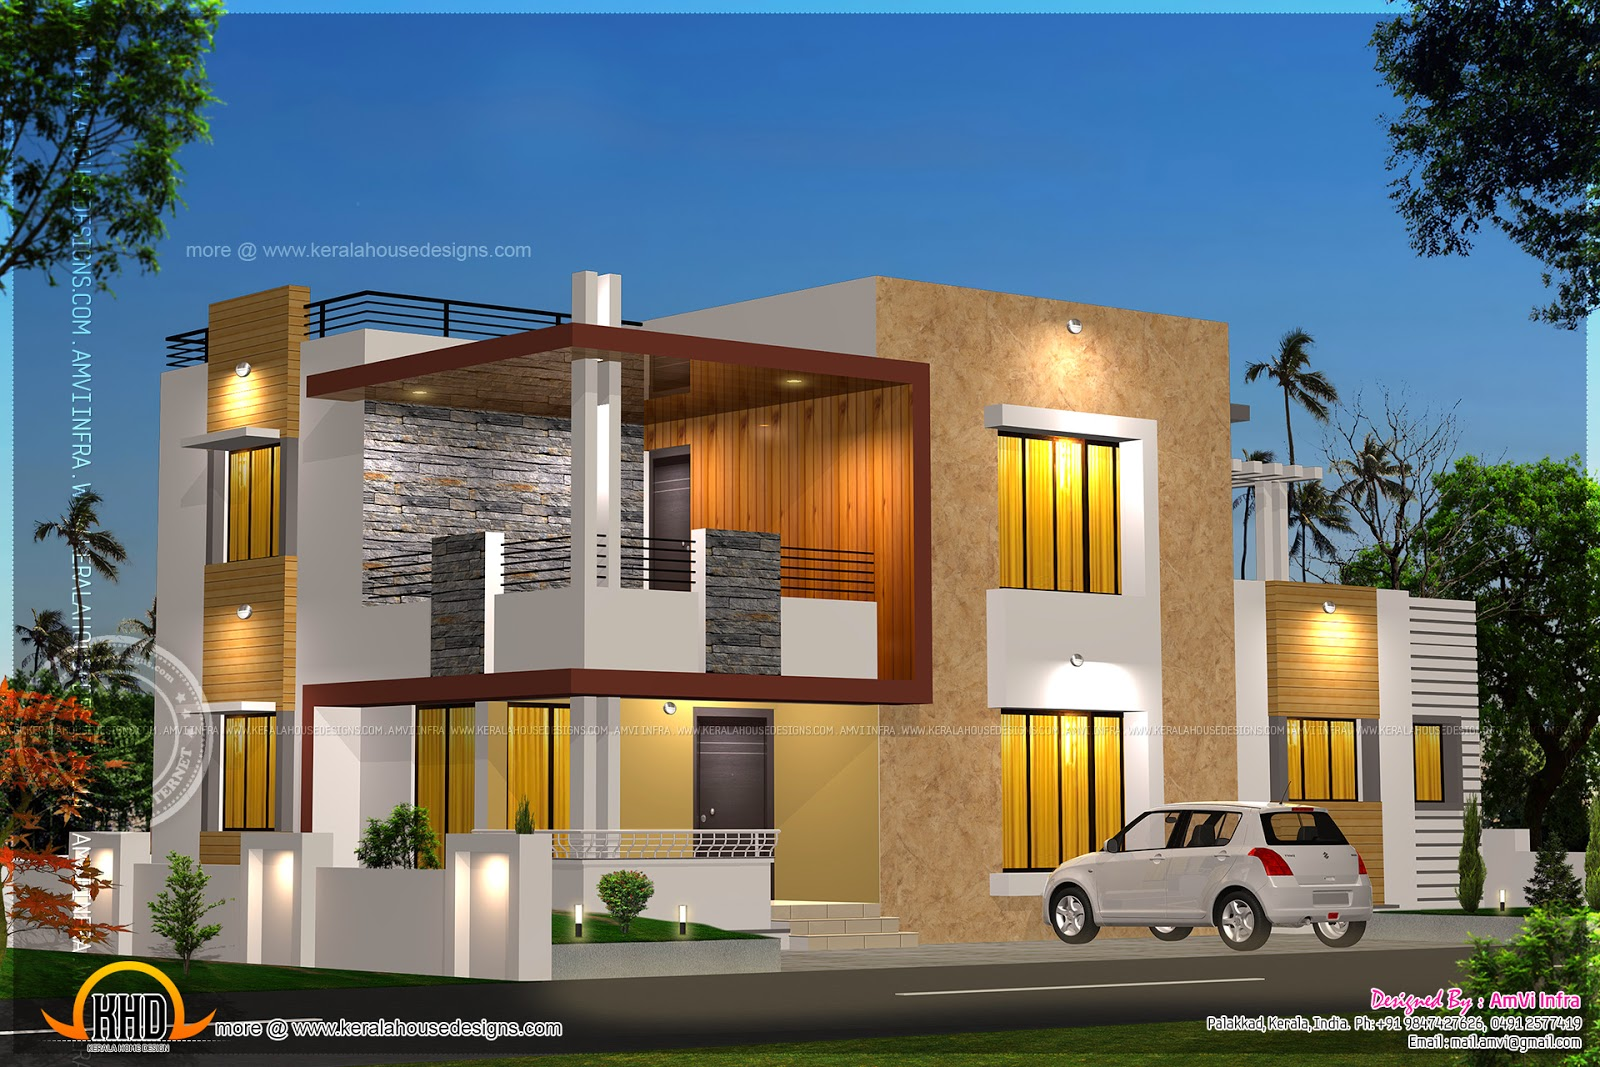 Elevation Plan For Home : Floor plan and elevation of modern house kerala home